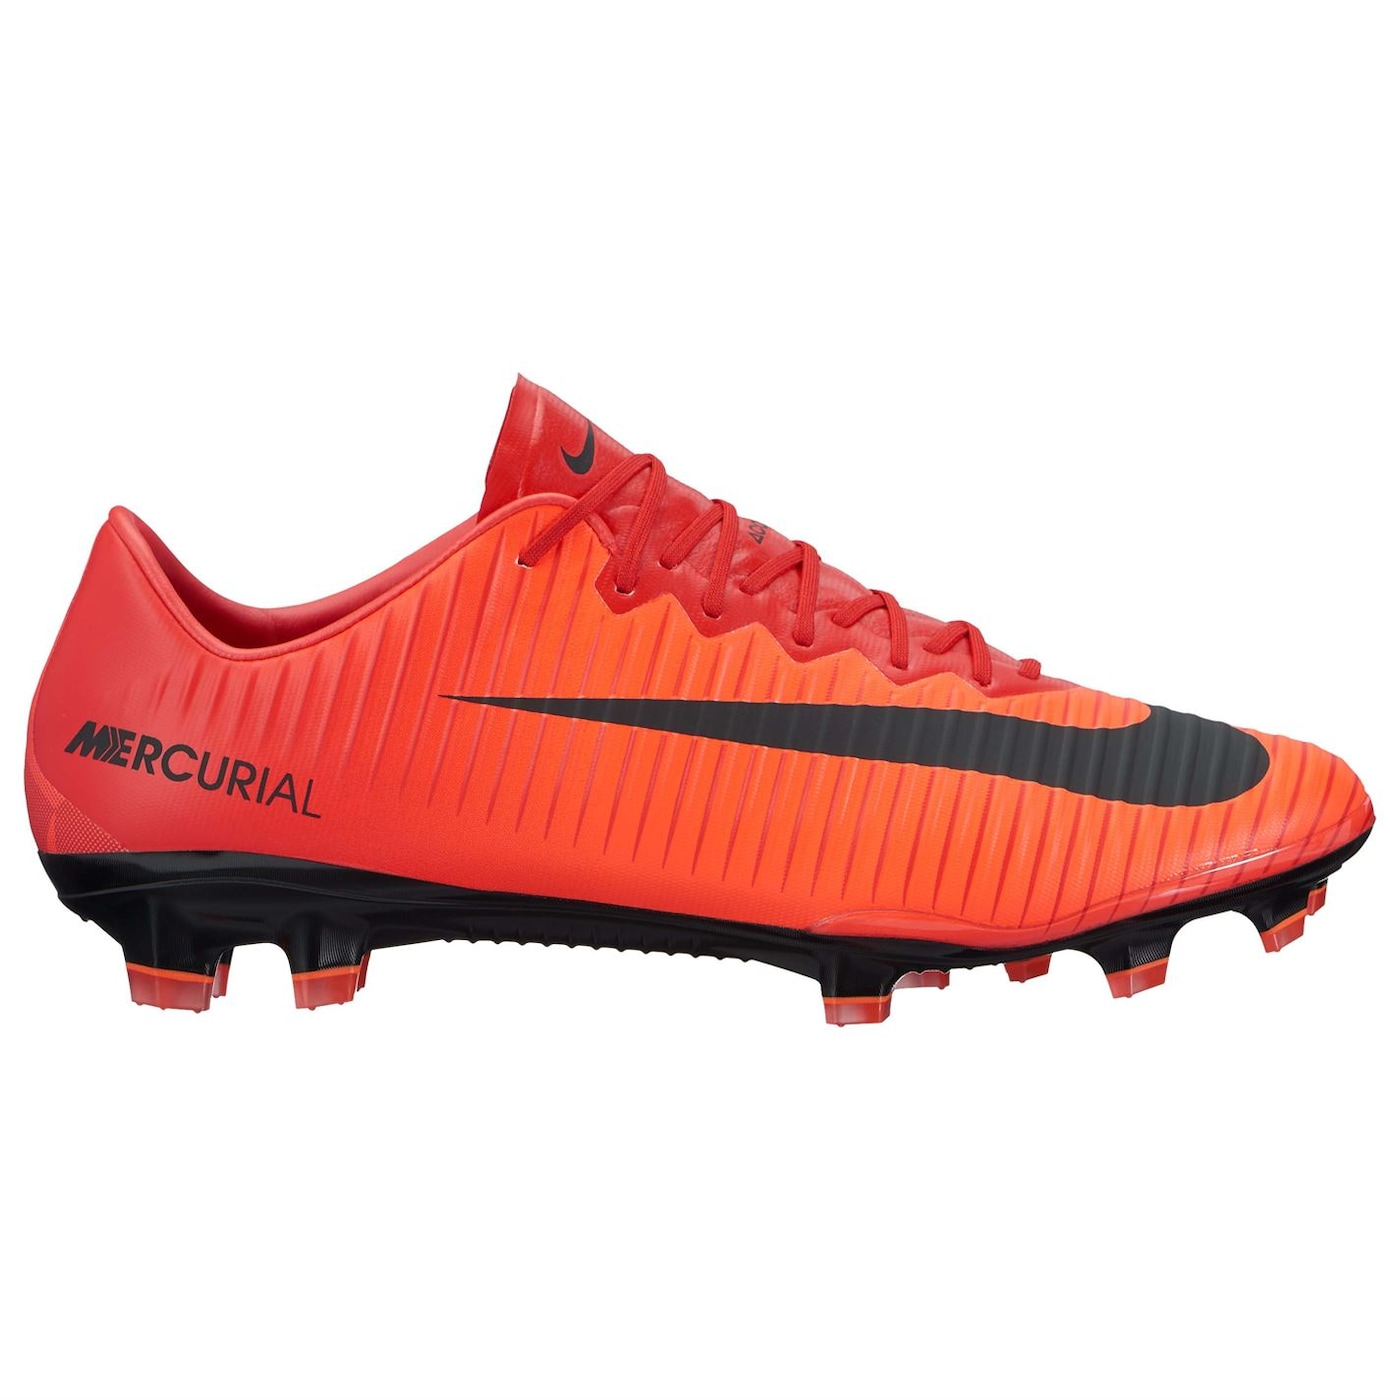 Nike Mercurial Vapor Mens FG Football Boots